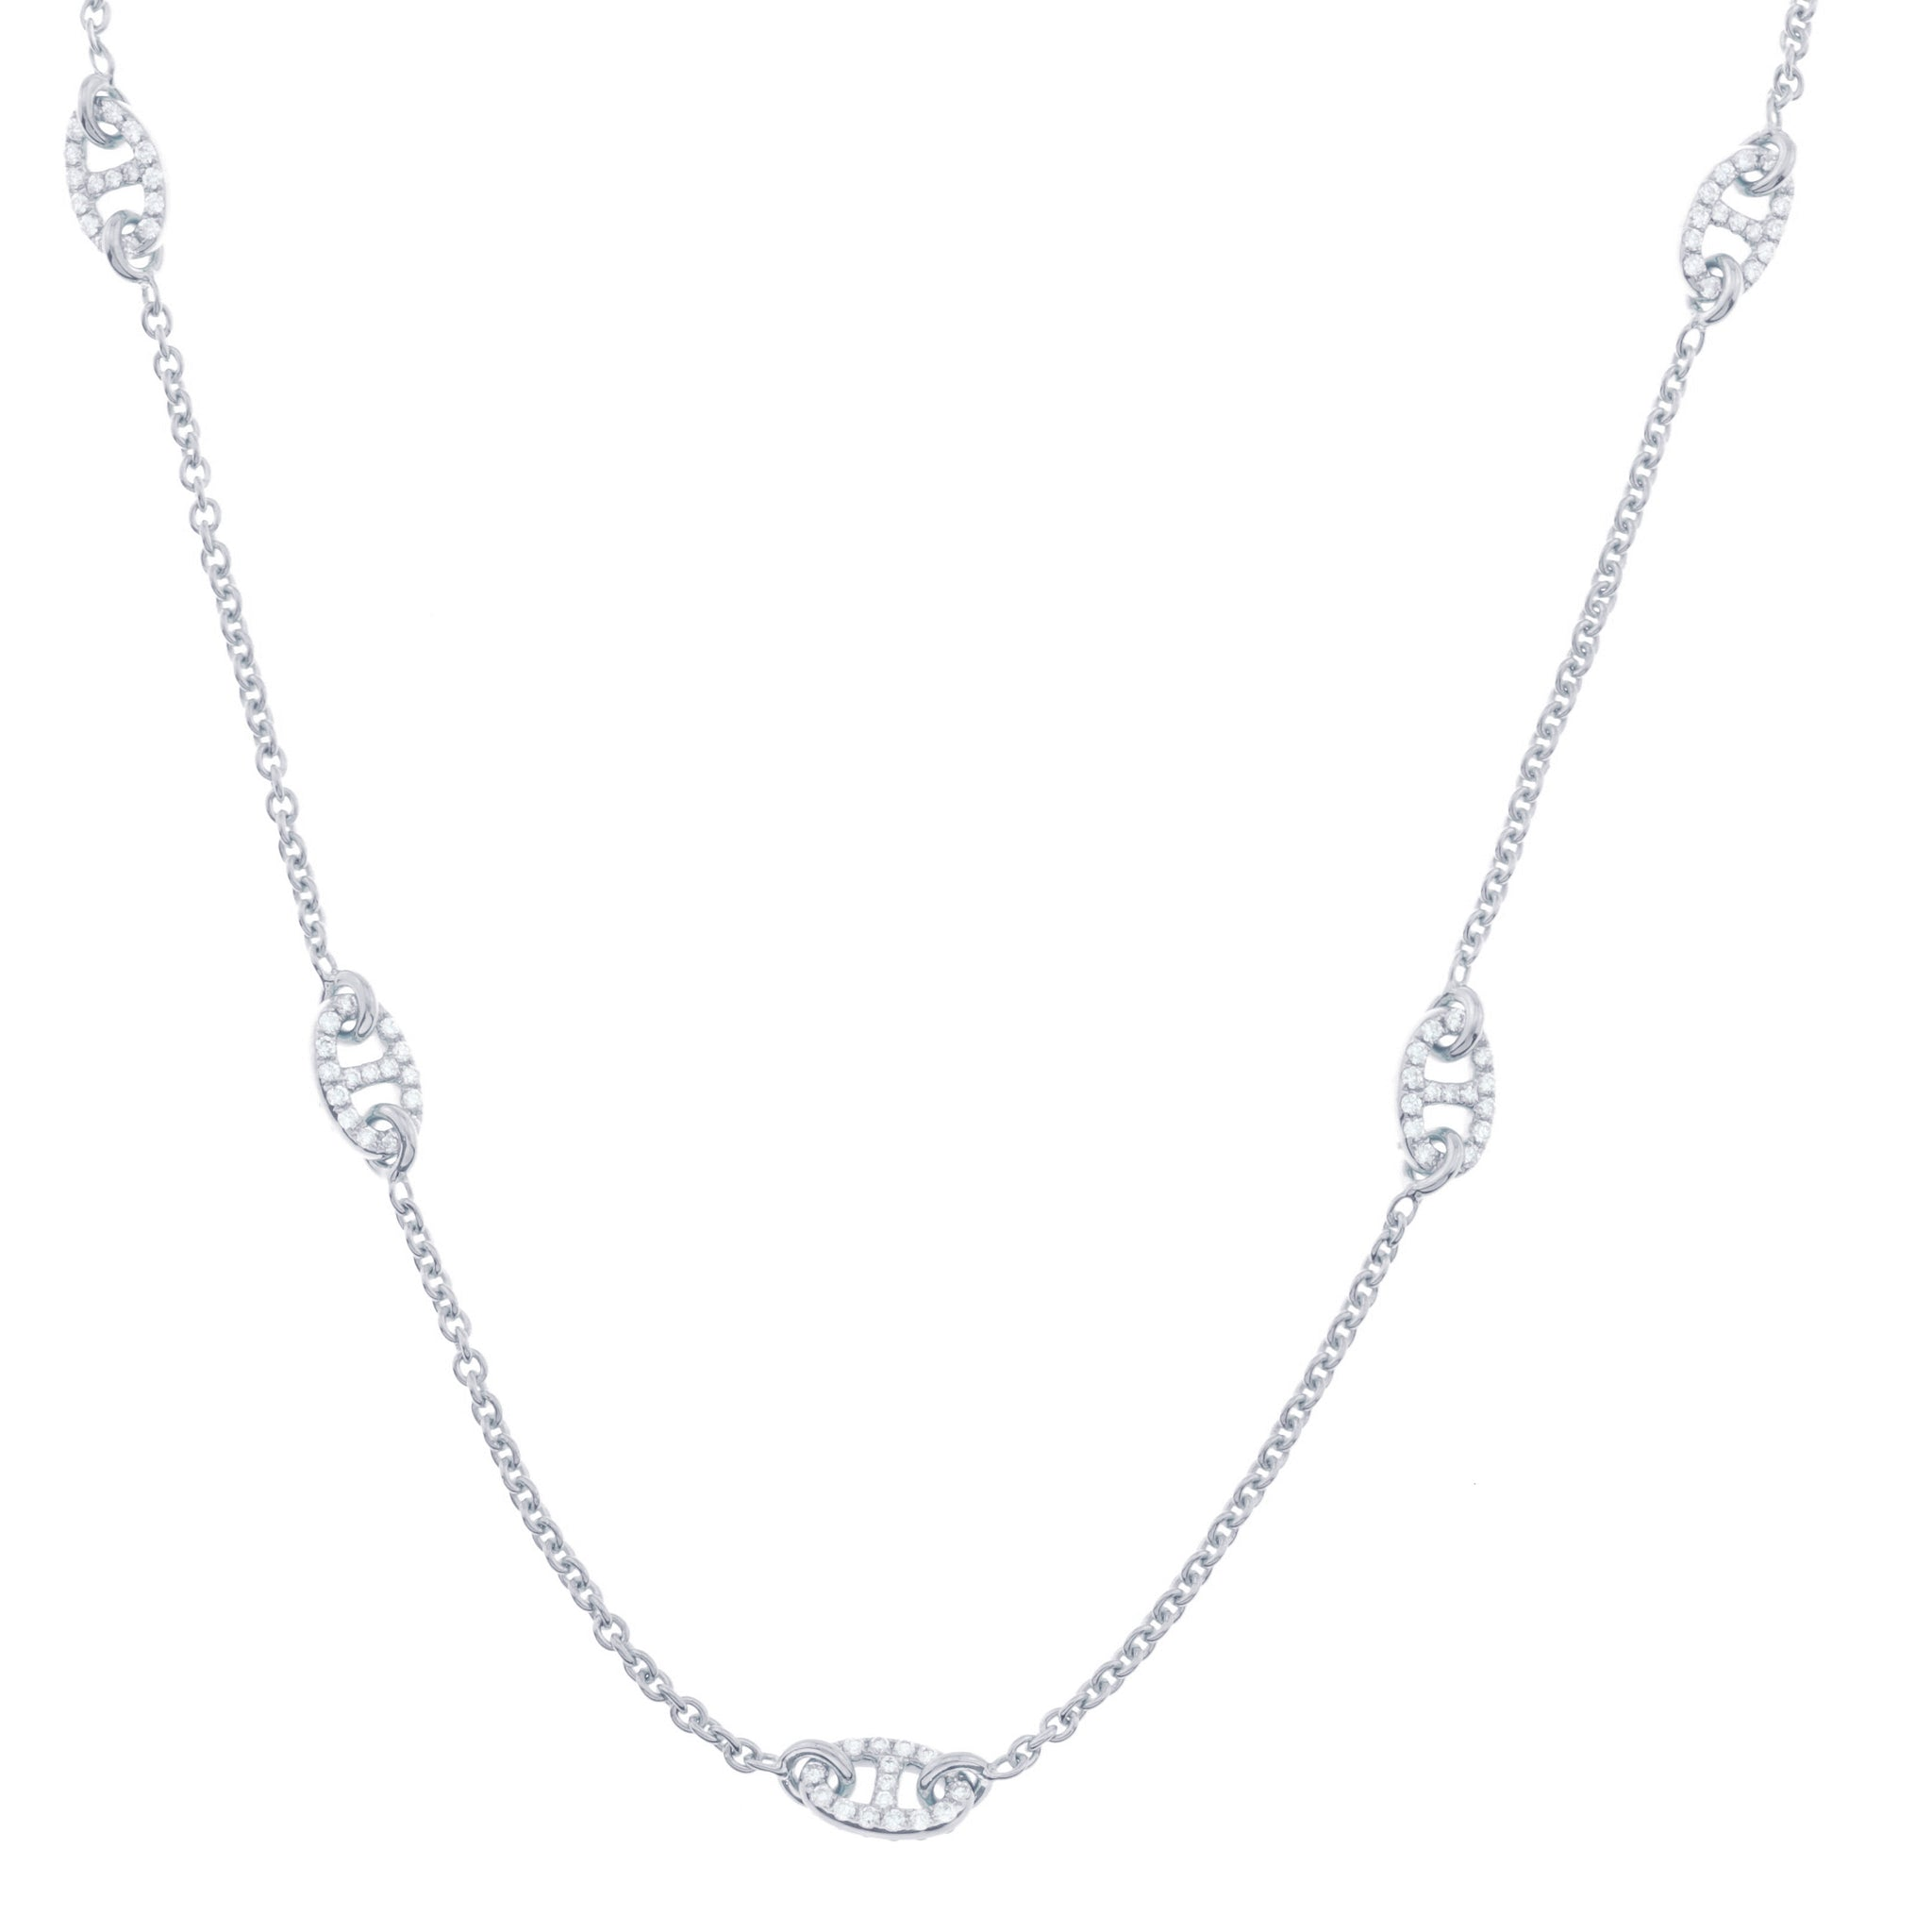 RoseWhiteChain with Diamond Links